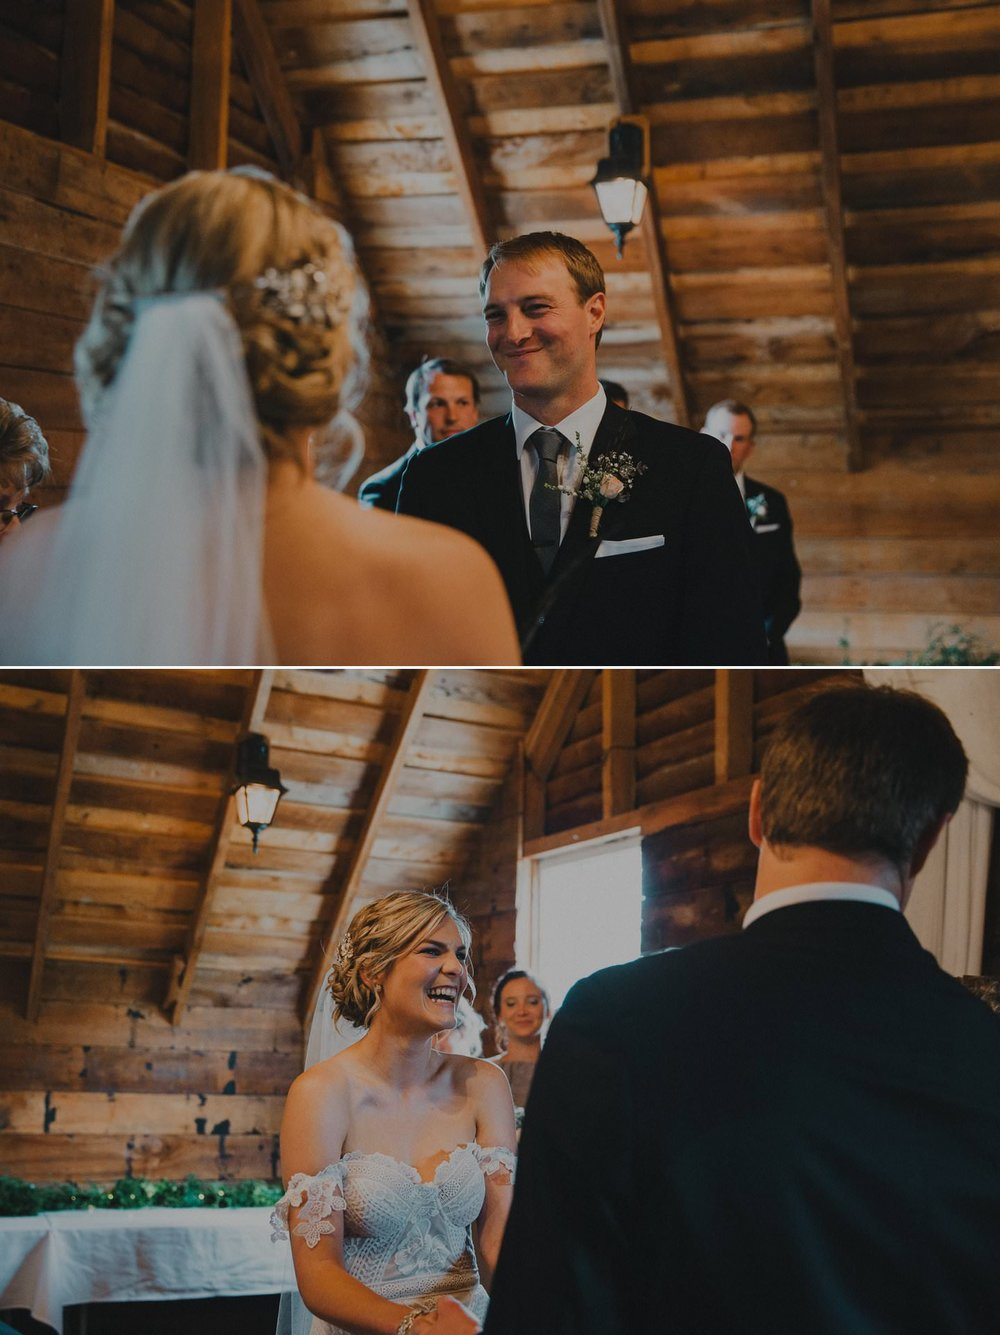 Bride and groom during their vows to each other